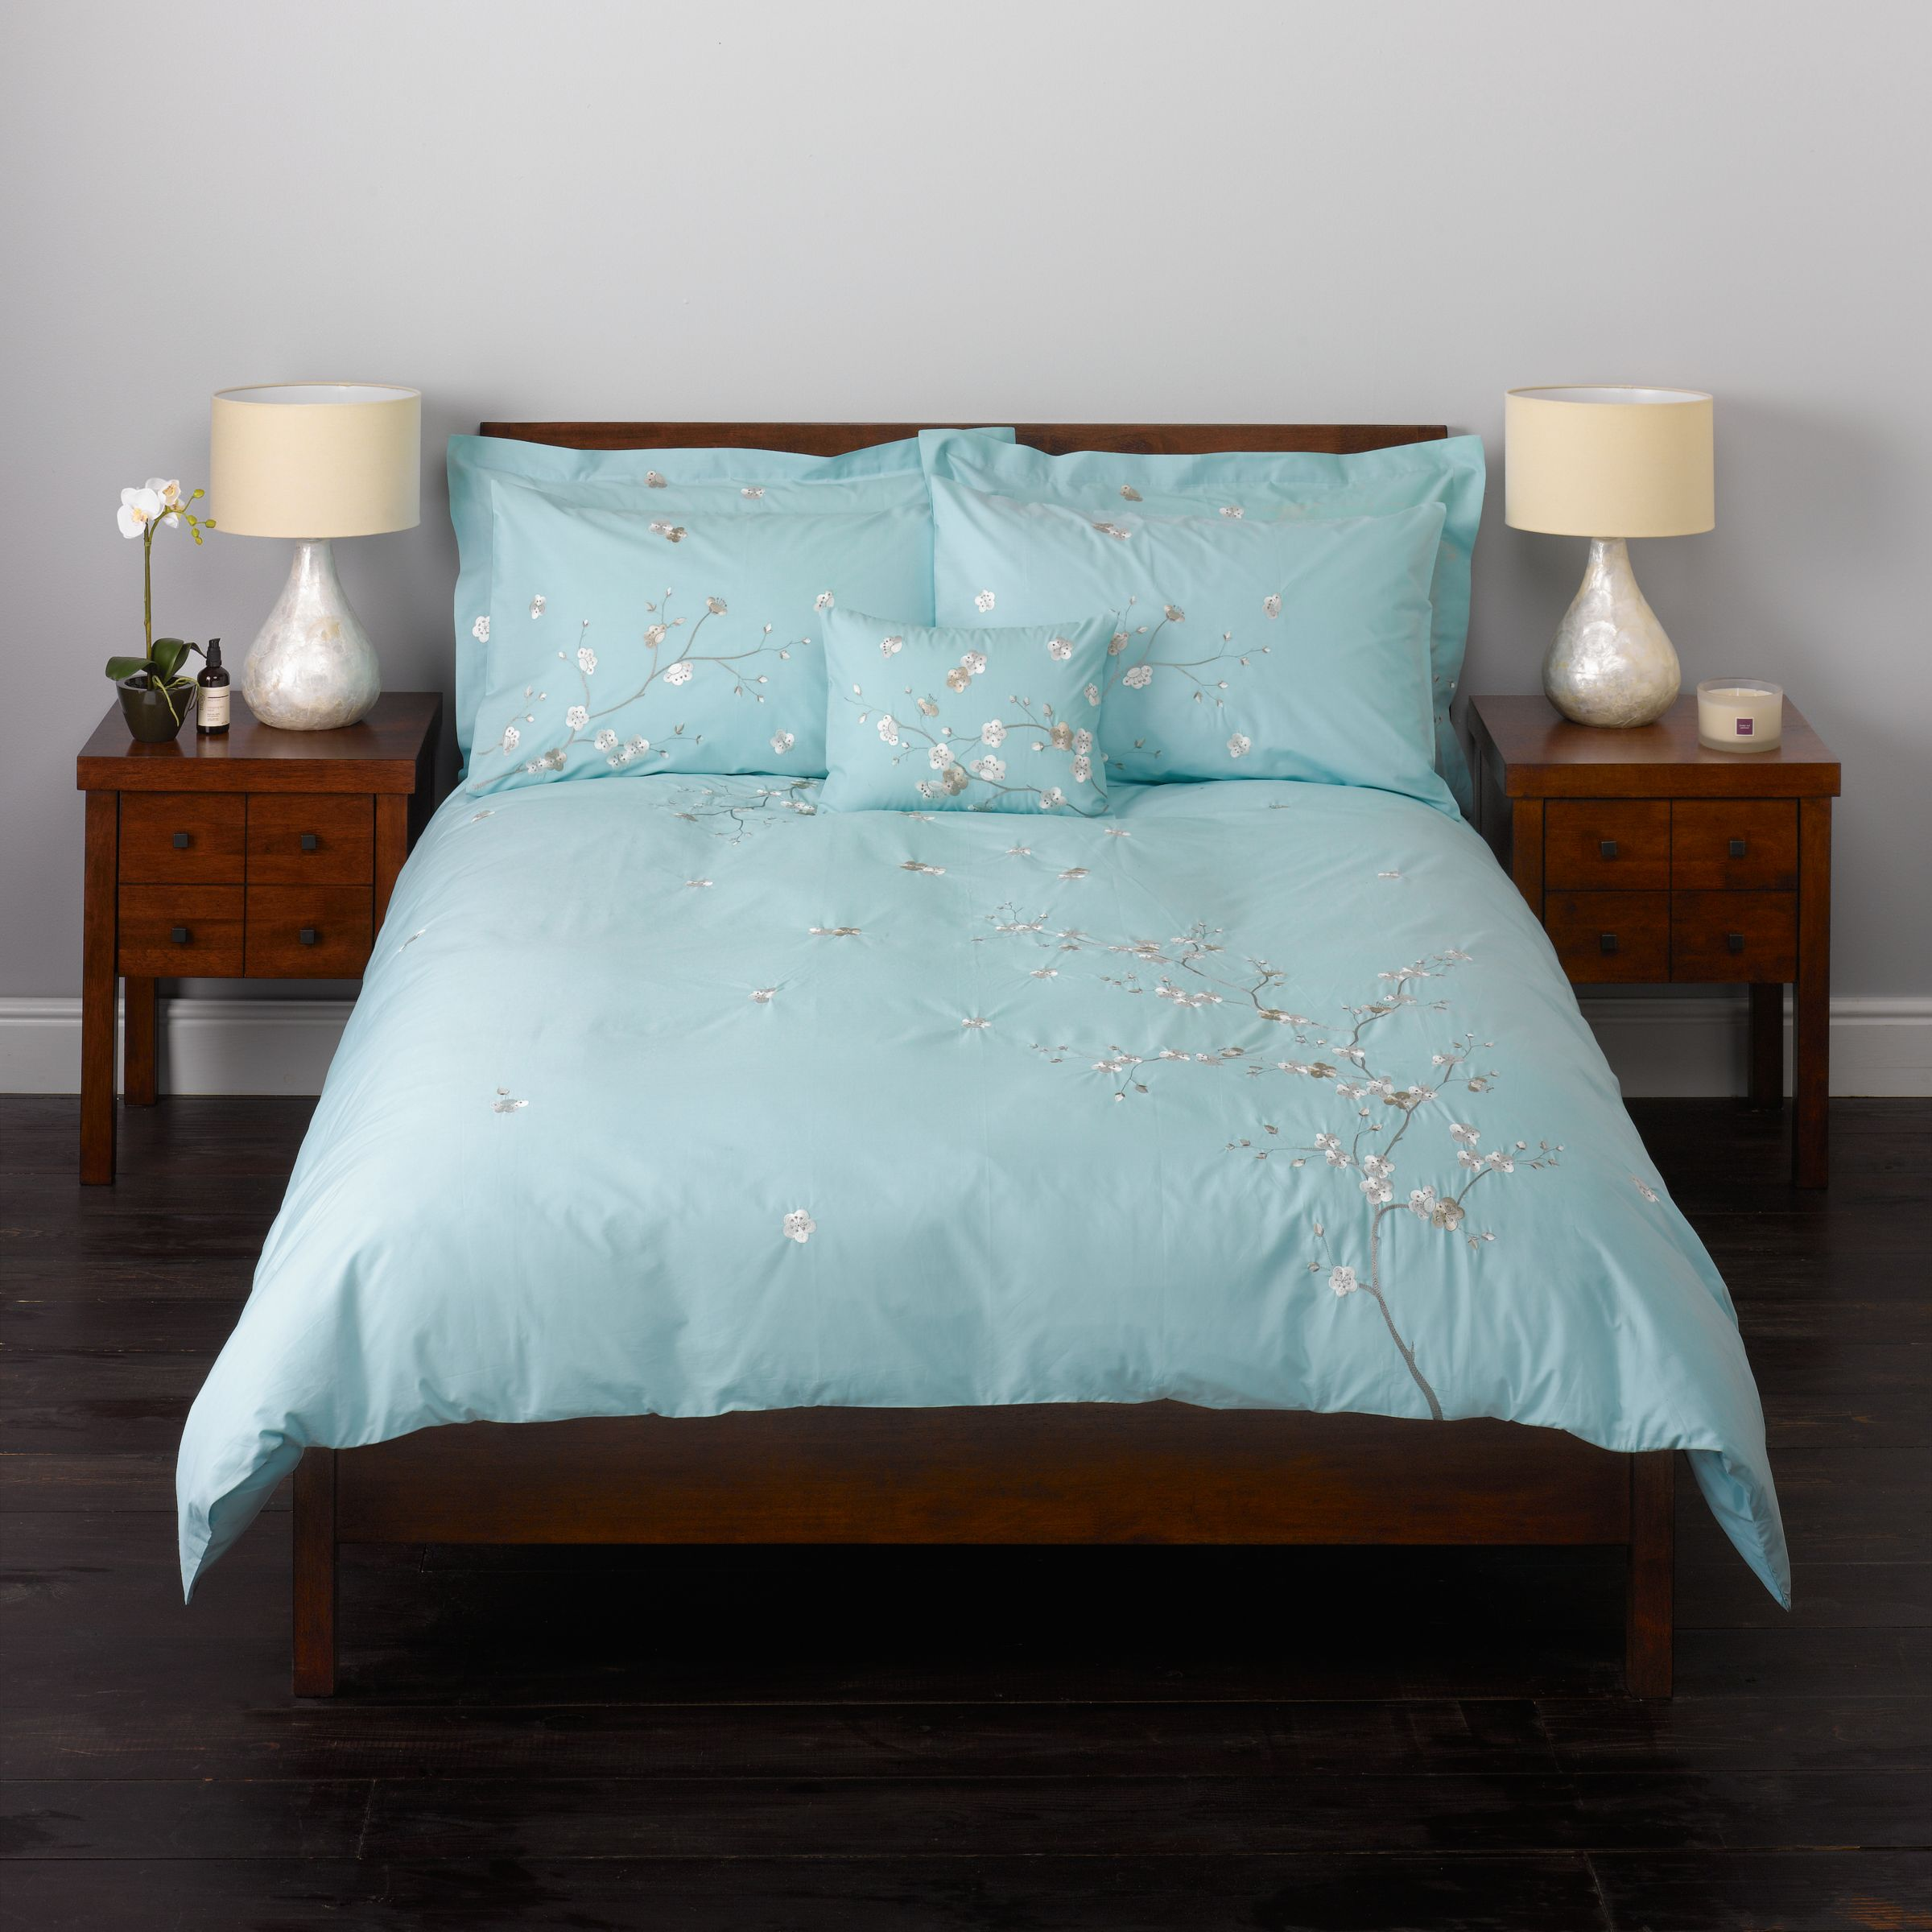 Buy Cheap Duck Egg Blue Duvet Cover Compare Home